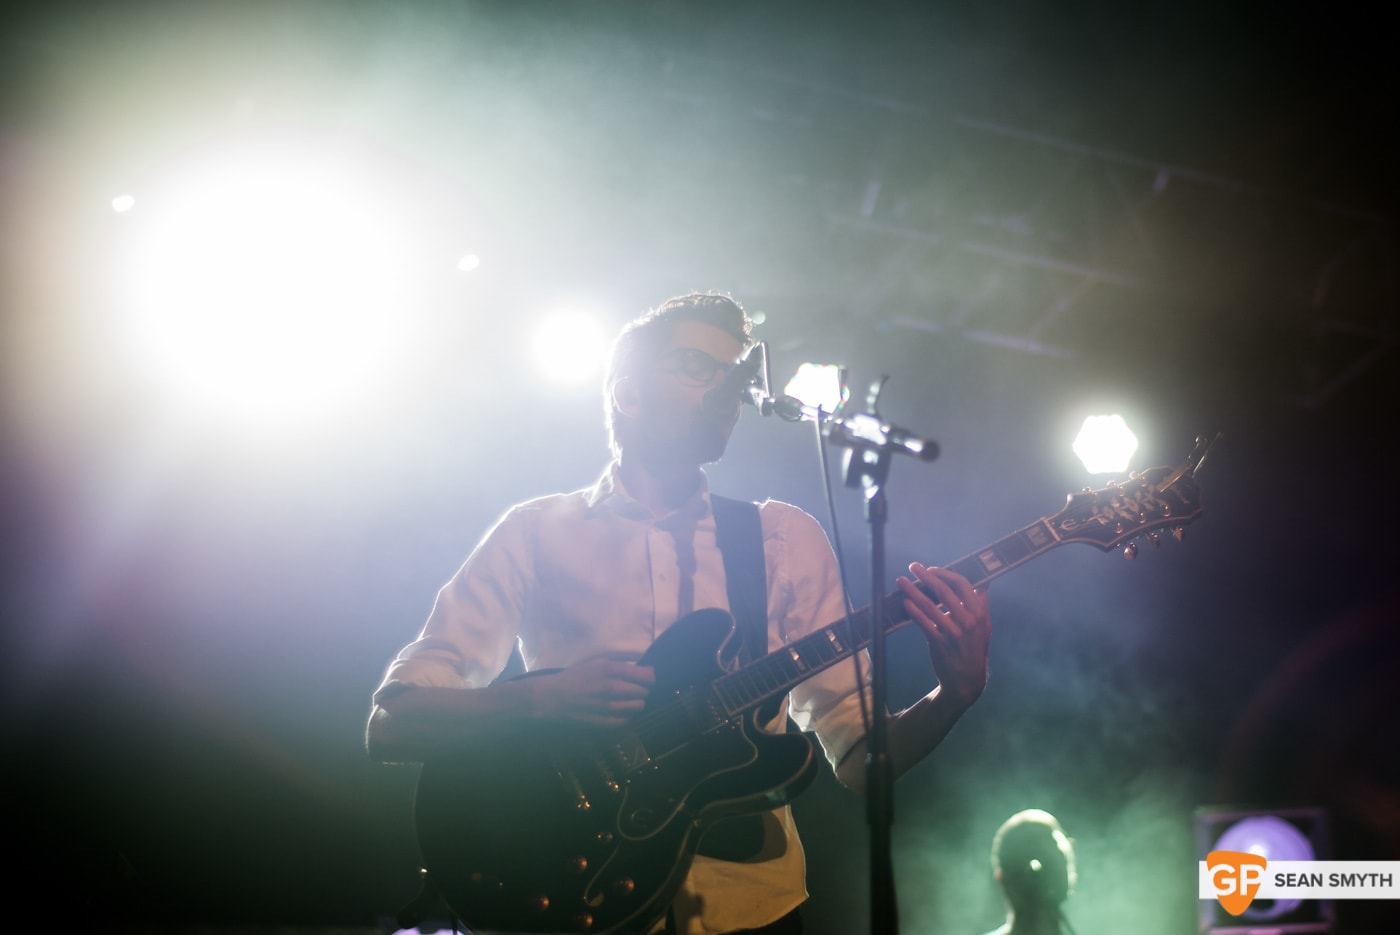 hudson-taylor-at-the-olympia-theatre-26-2-15-by-sean-smyth-4-of-26_16730870526_o